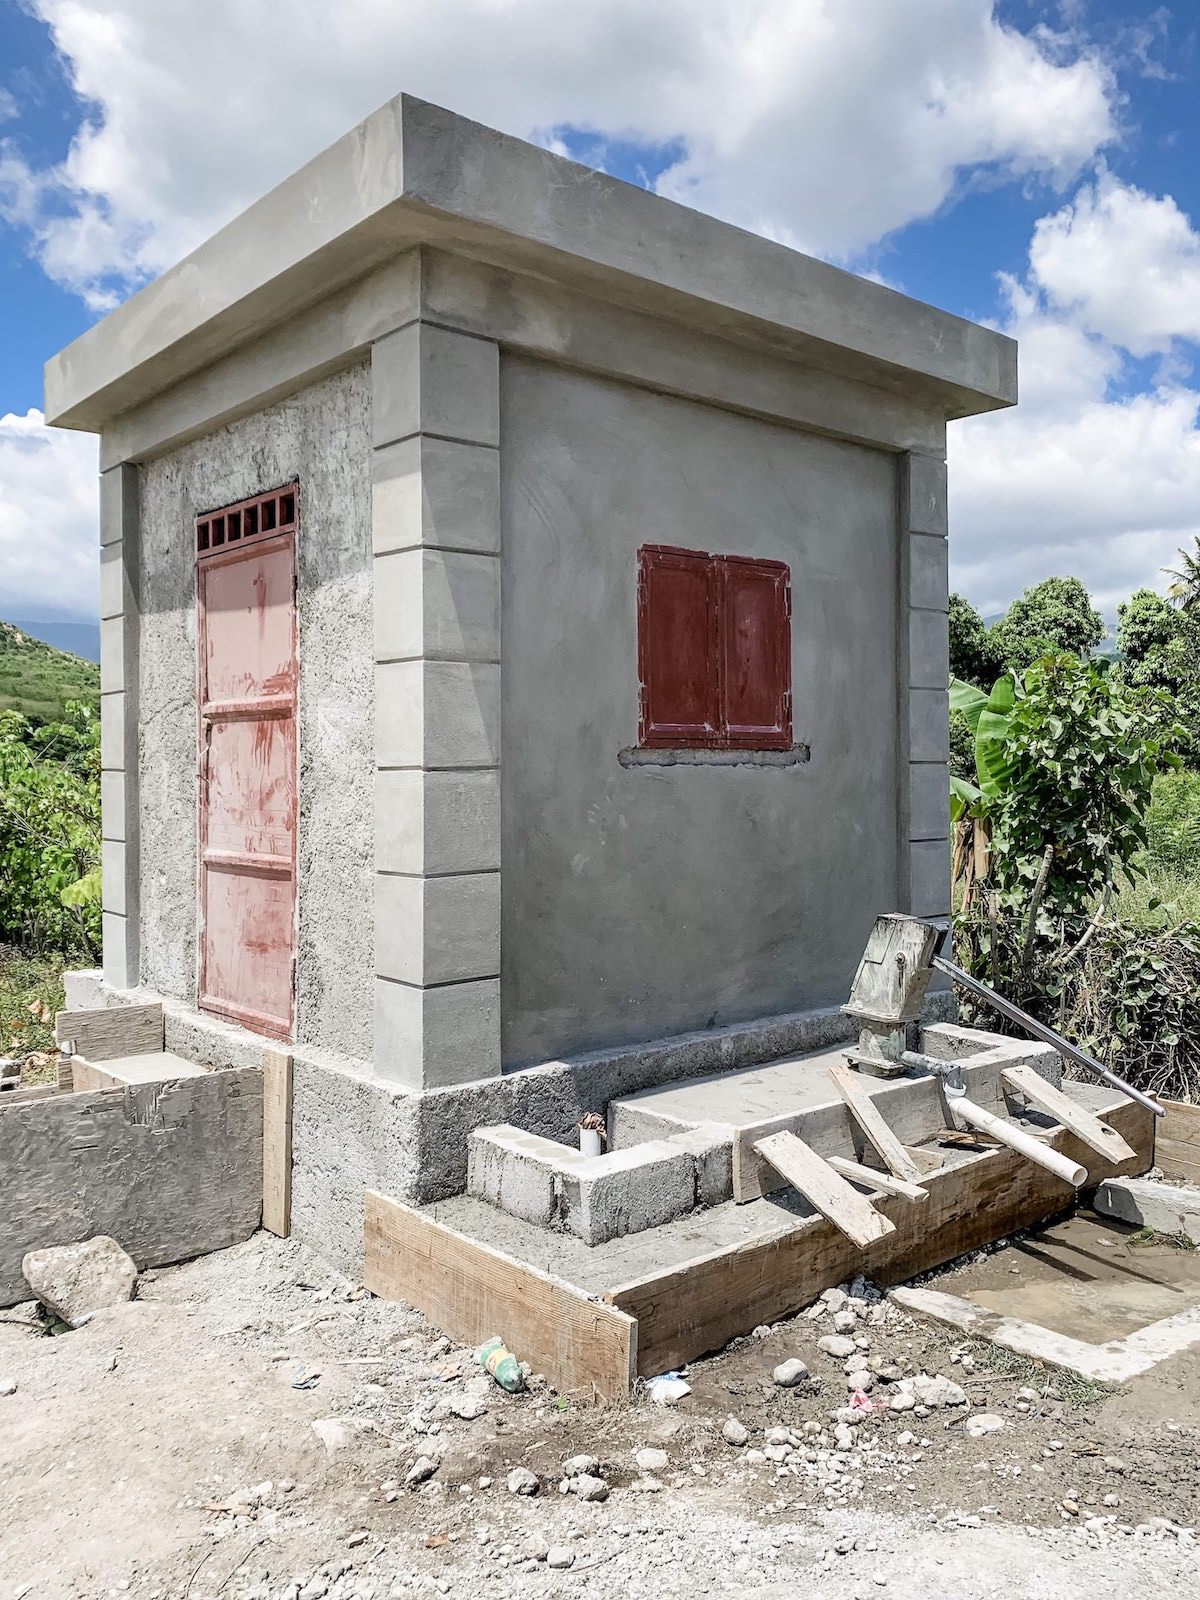 THE WATER WELL IN LA BEYI! YOU CAN SEE A HAND PUMP WELL AT THE FRONT OF THE BUILDING, WHICH THEY DESCRIBED CAN BE USED FOR CLEANING PURPOSES. INSIDE, THERE WILL BE A MORE SOPHISTICATED SYSTEM THAT WILL FILTER AND CHLORINATE WATER FOR DRINKING!  WATCH THIS VIDEO TO SEE HOW IT WILL WORK!